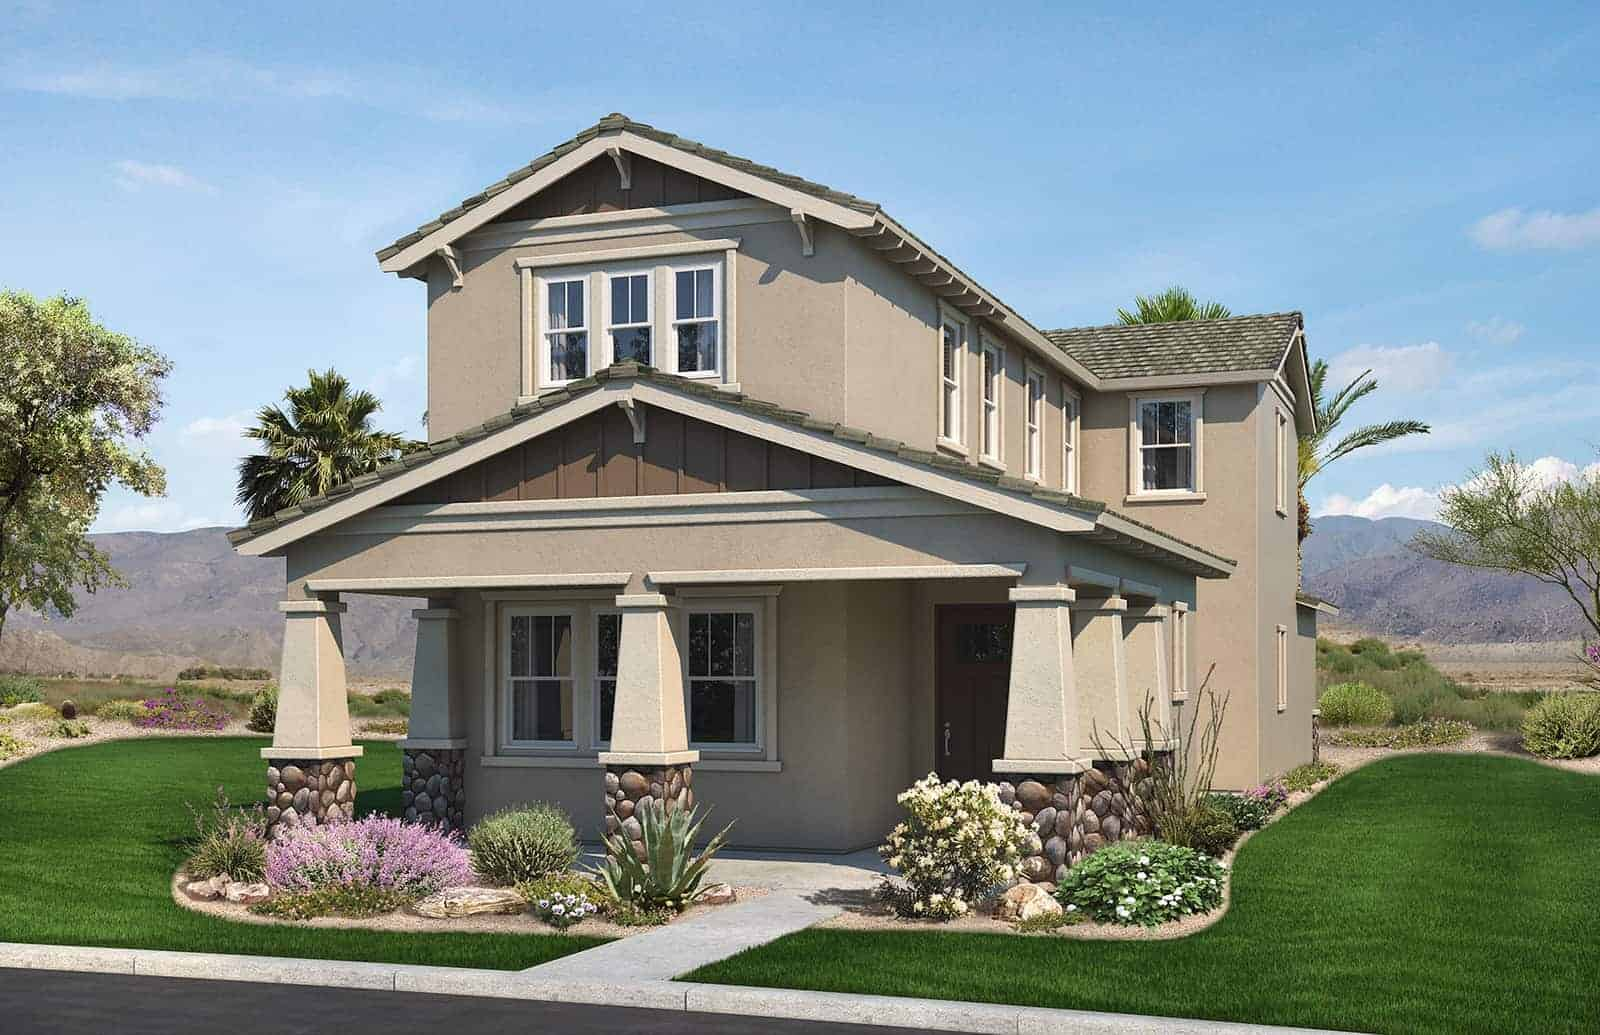 Cottages at Verrado   Residence 1   Plan A